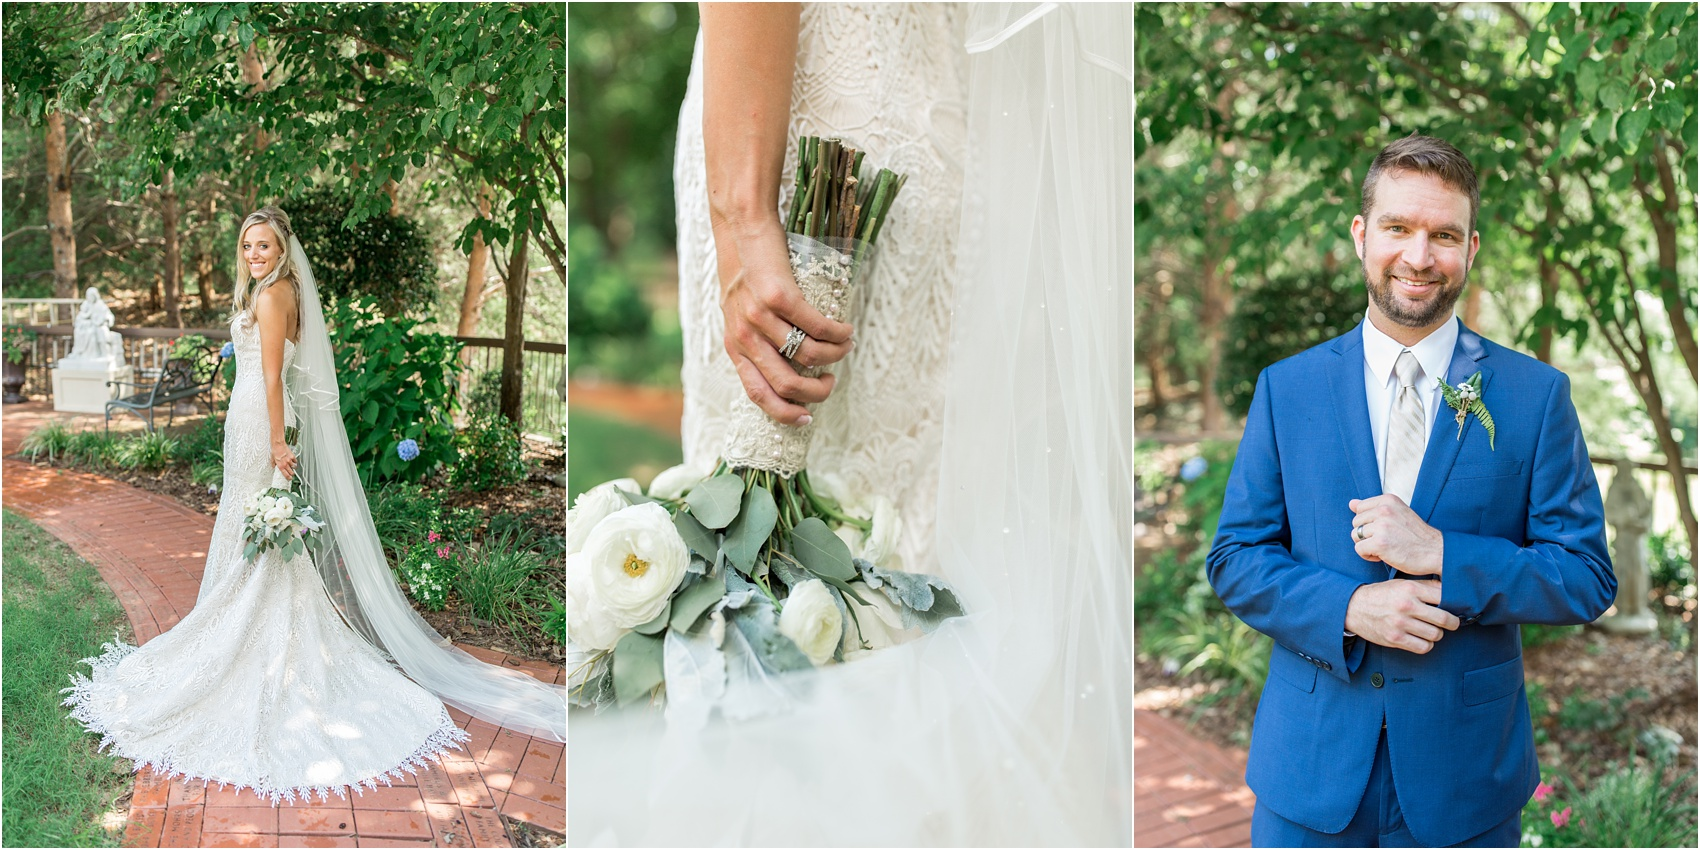 Savannah Eve Photography- Barkie-Wilson Wedding- Sneak Peek-52.jpg